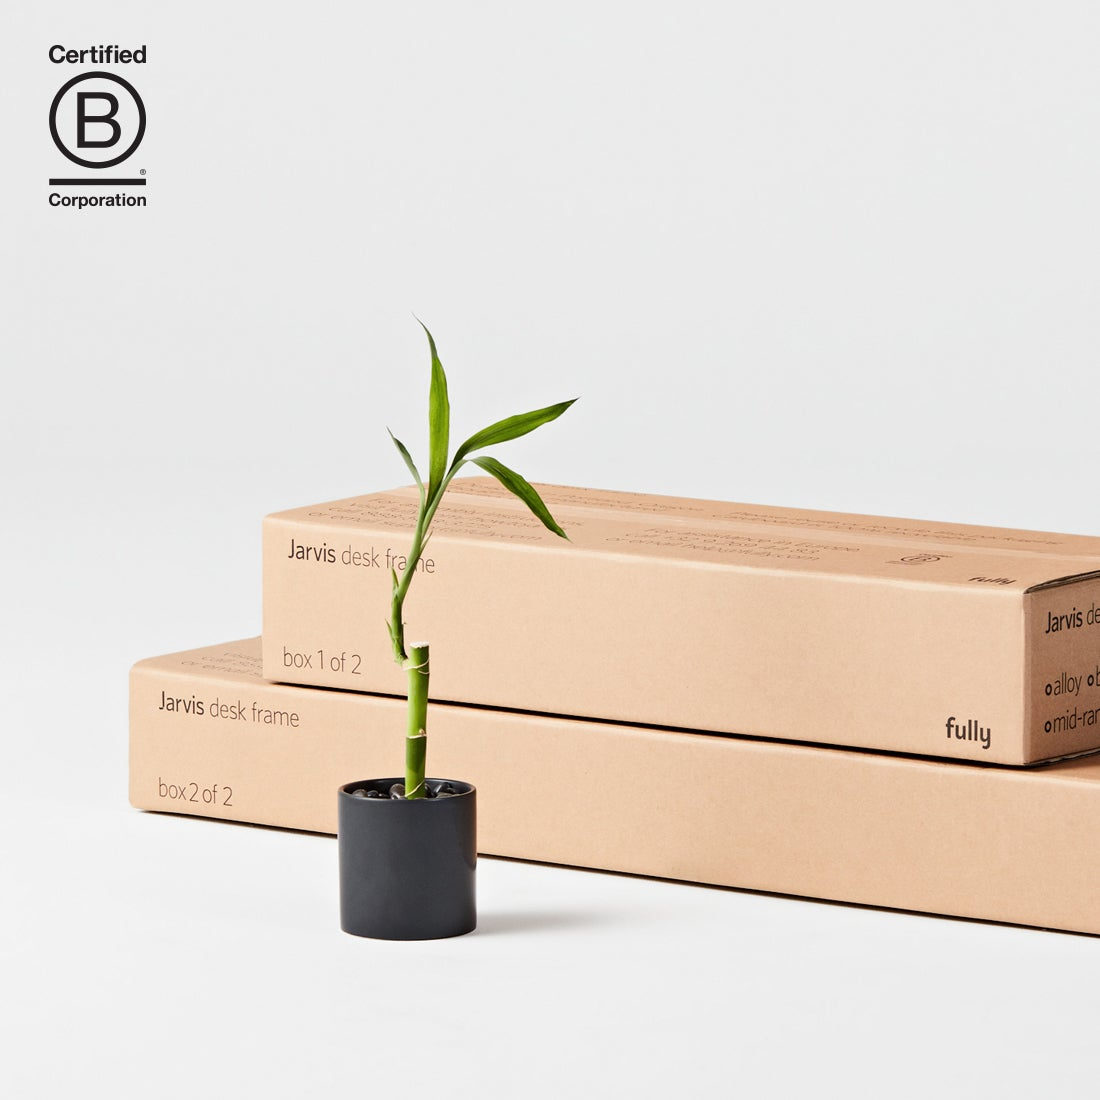 B Corp certified Jarvis desk packaging